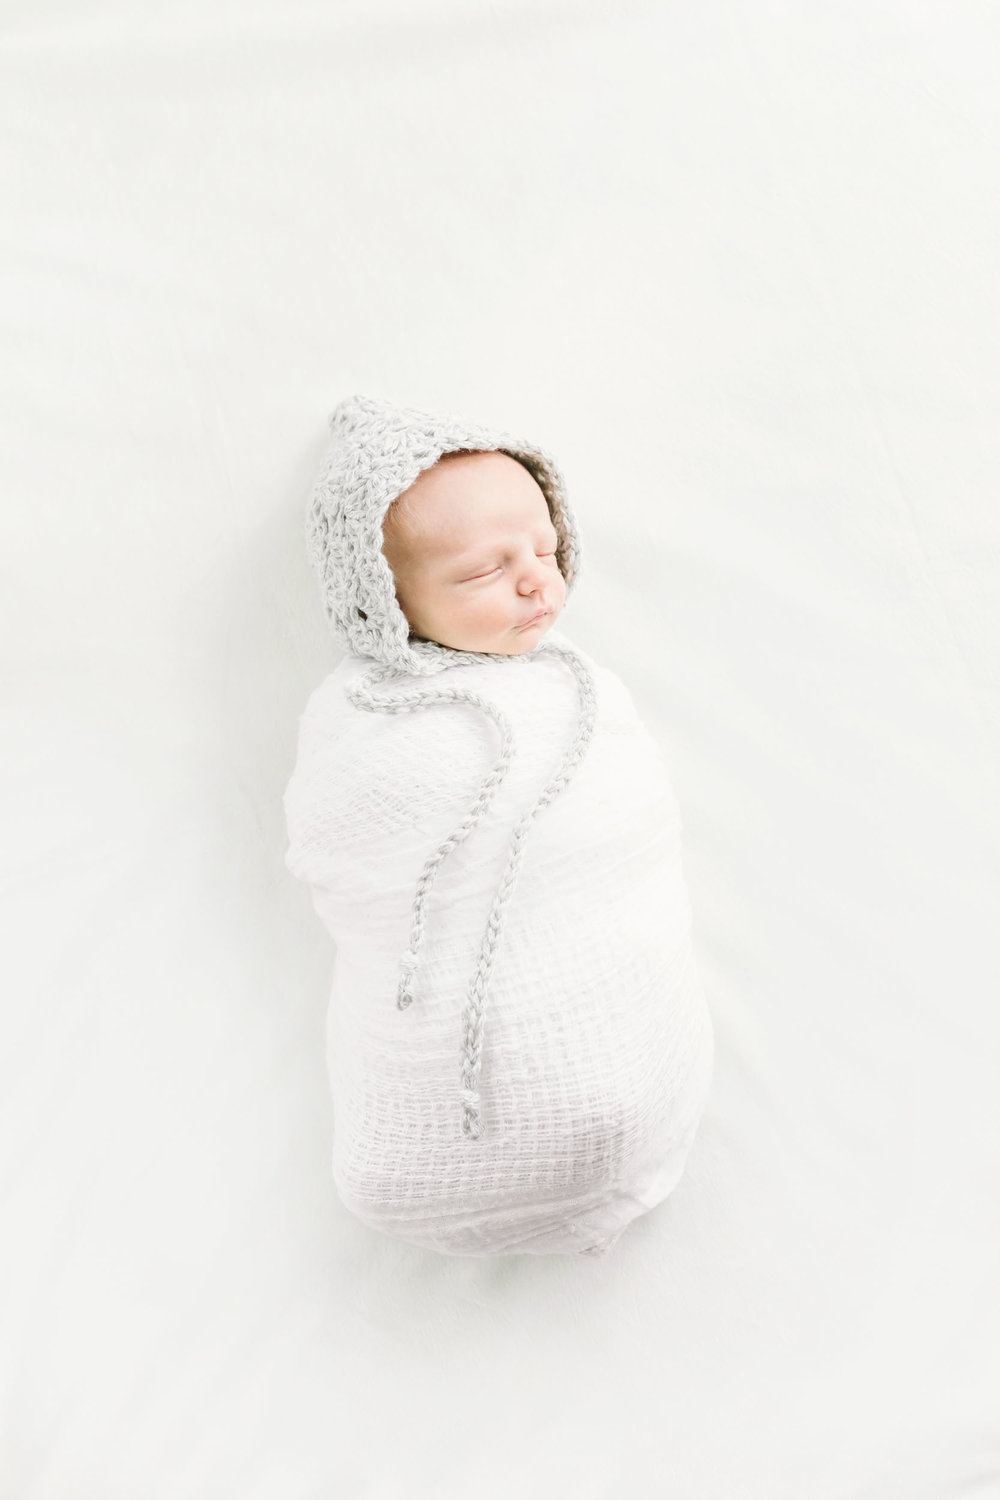 Geneva Illinois Newborn Photographer_Cassie Schott Photography_In Home Session_2.jpg